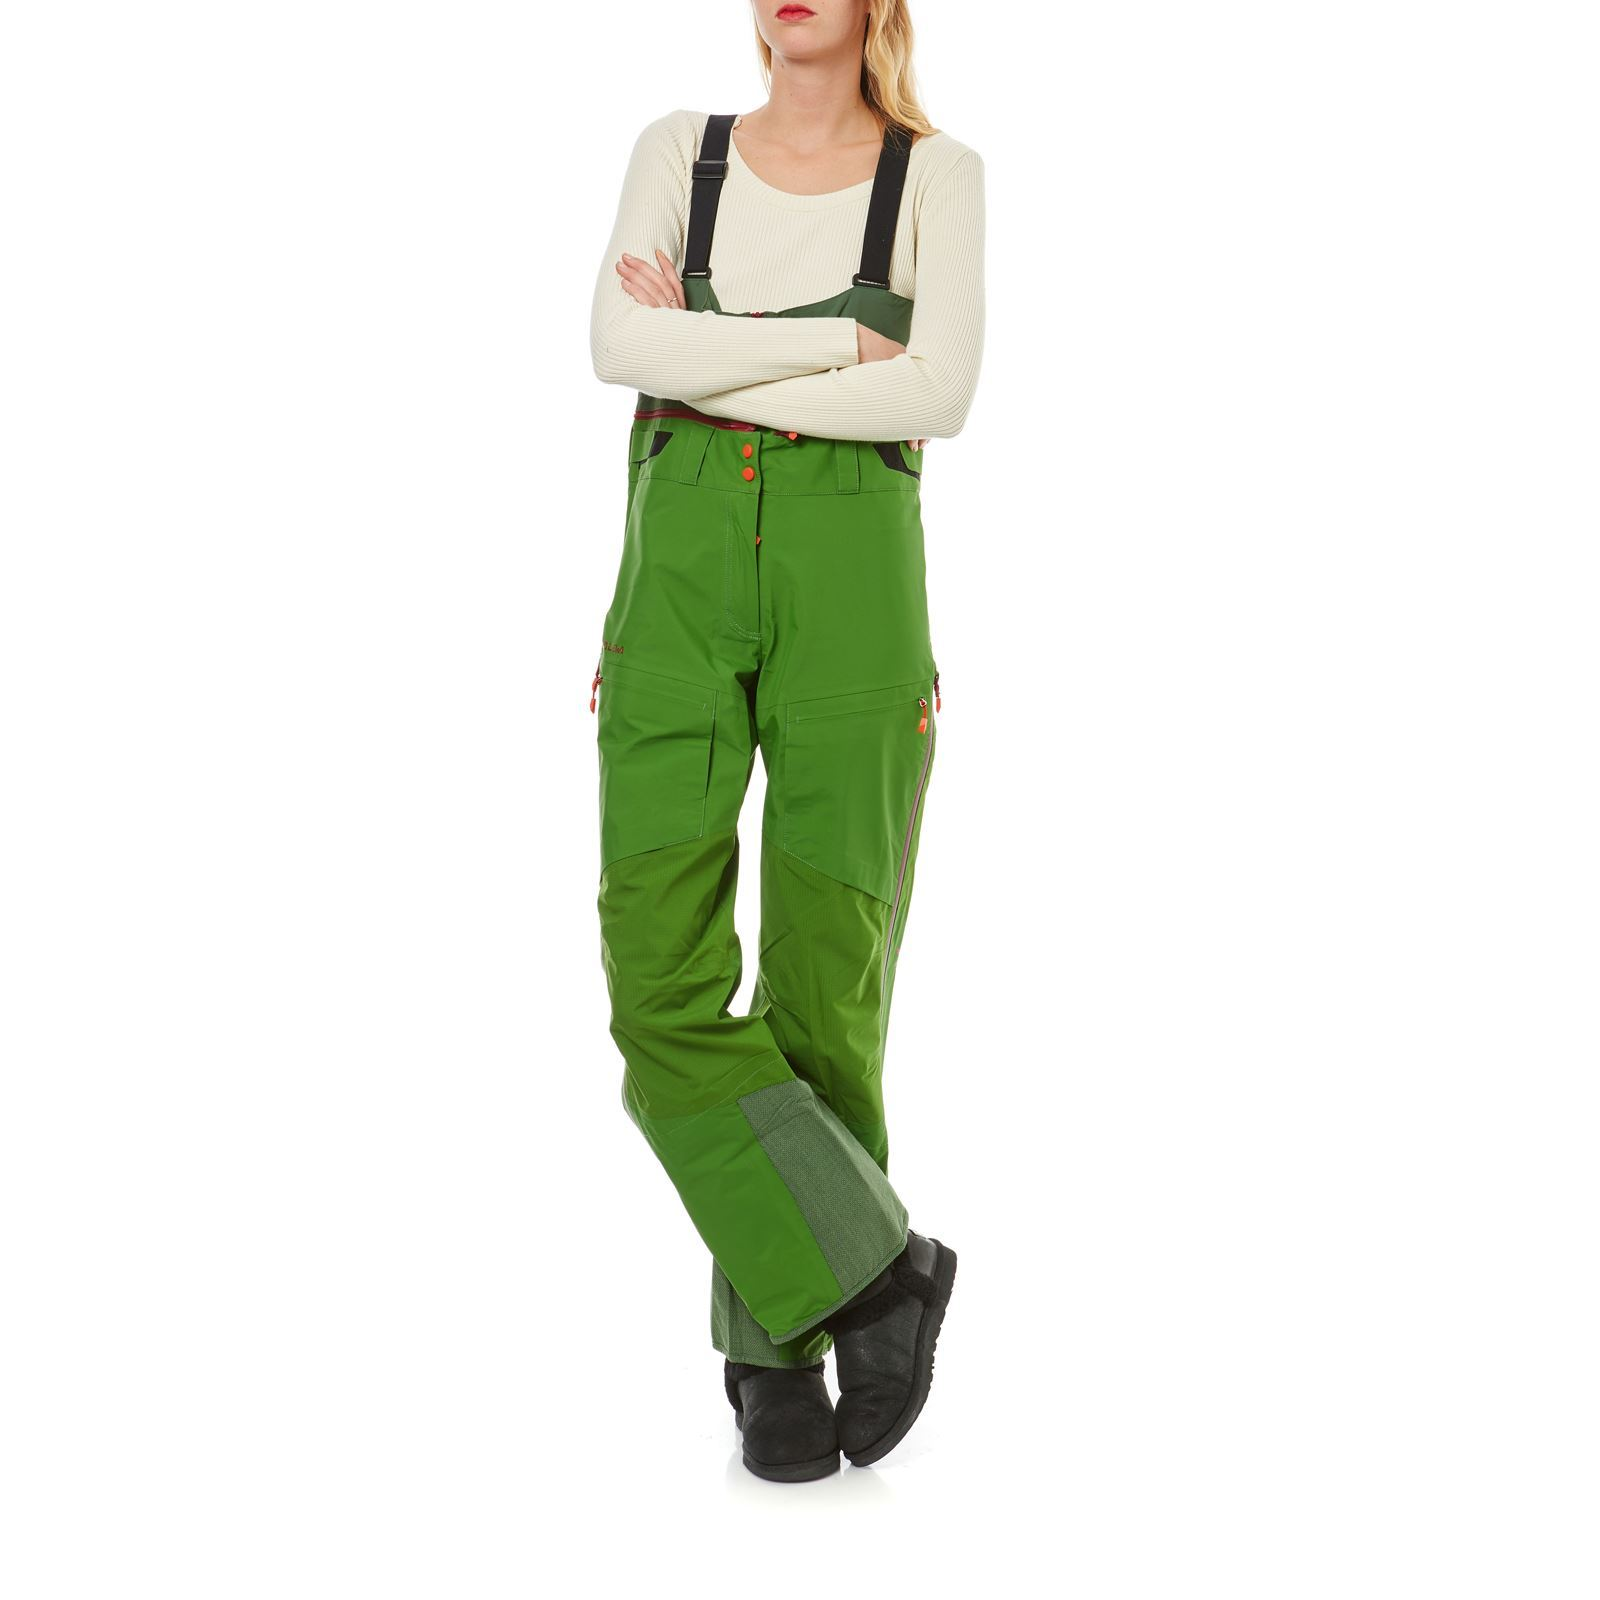 salewa pantalon de ski vert brandalley. Black Bedroom Furniture Sets. Home Design Ideas